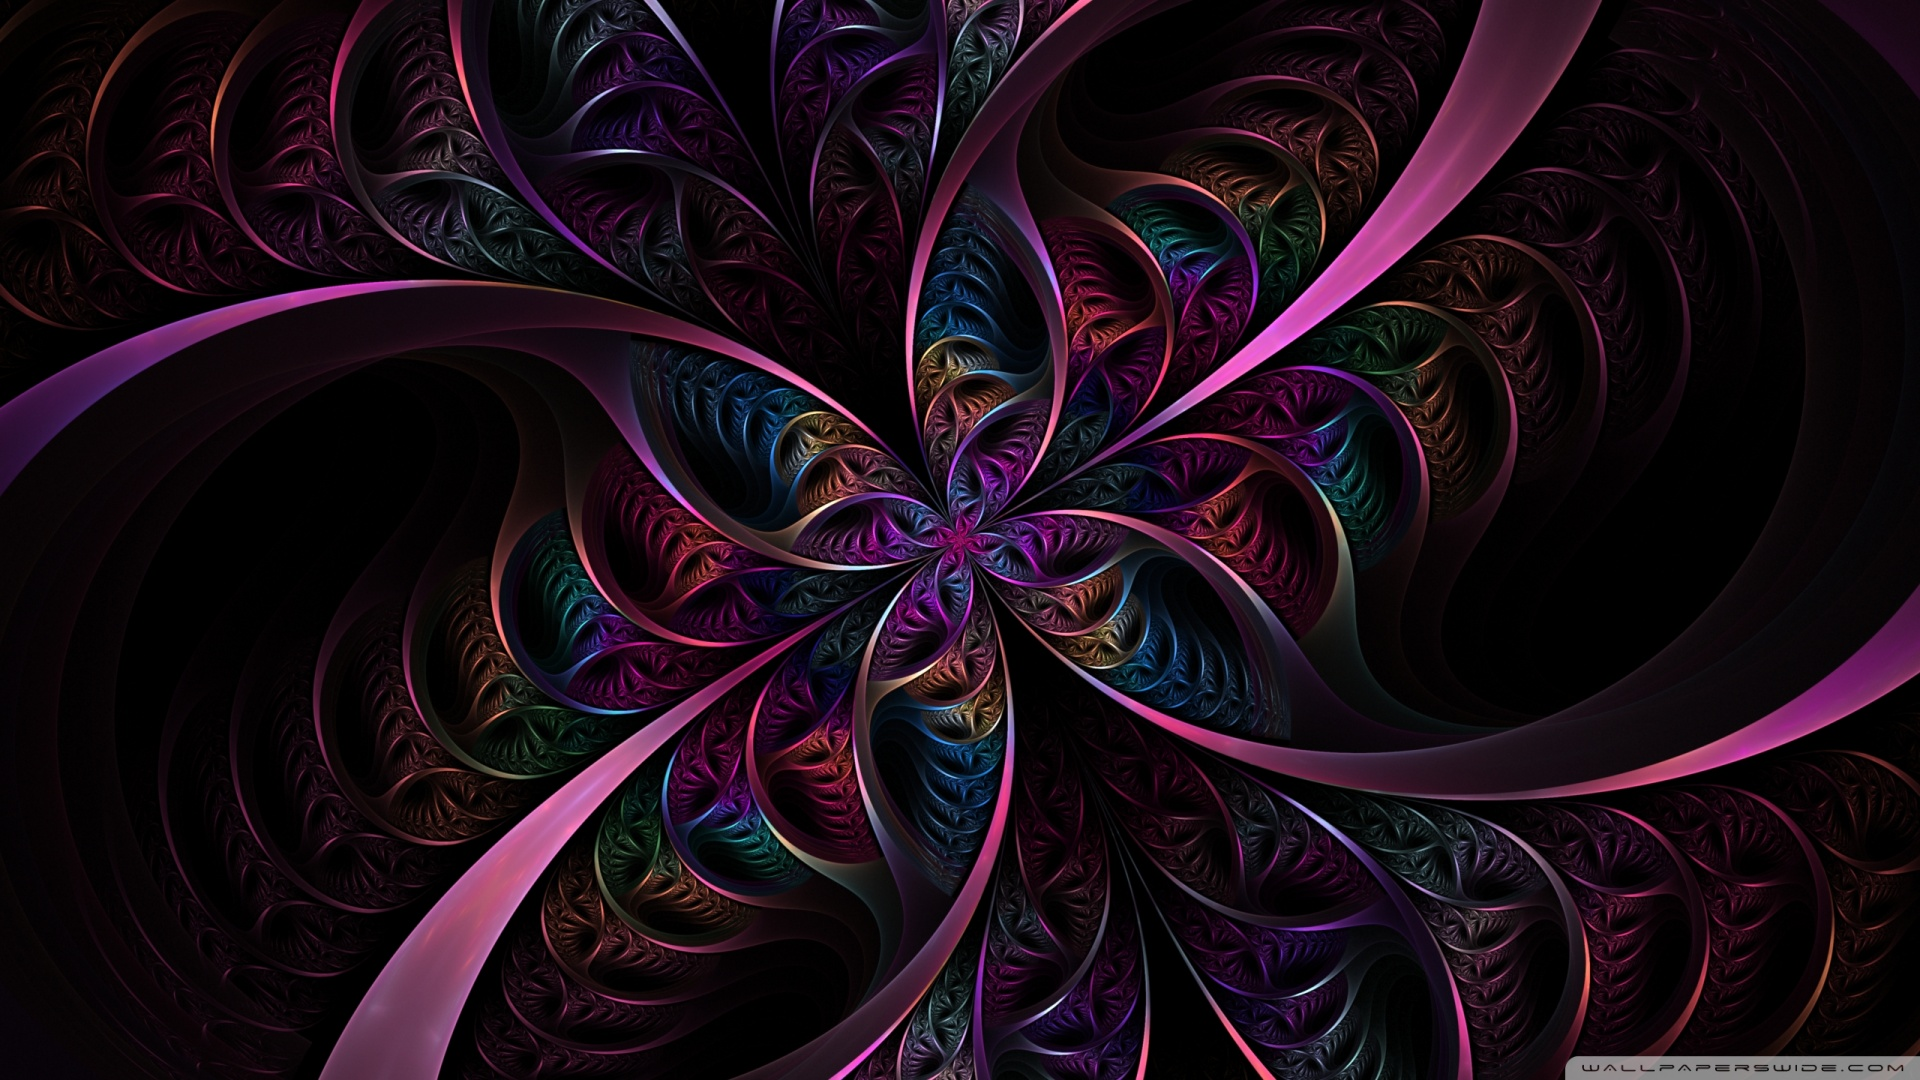 Psychedelic 2 Wallpaper 1920x1080 Psychedelic 2 1920x1080